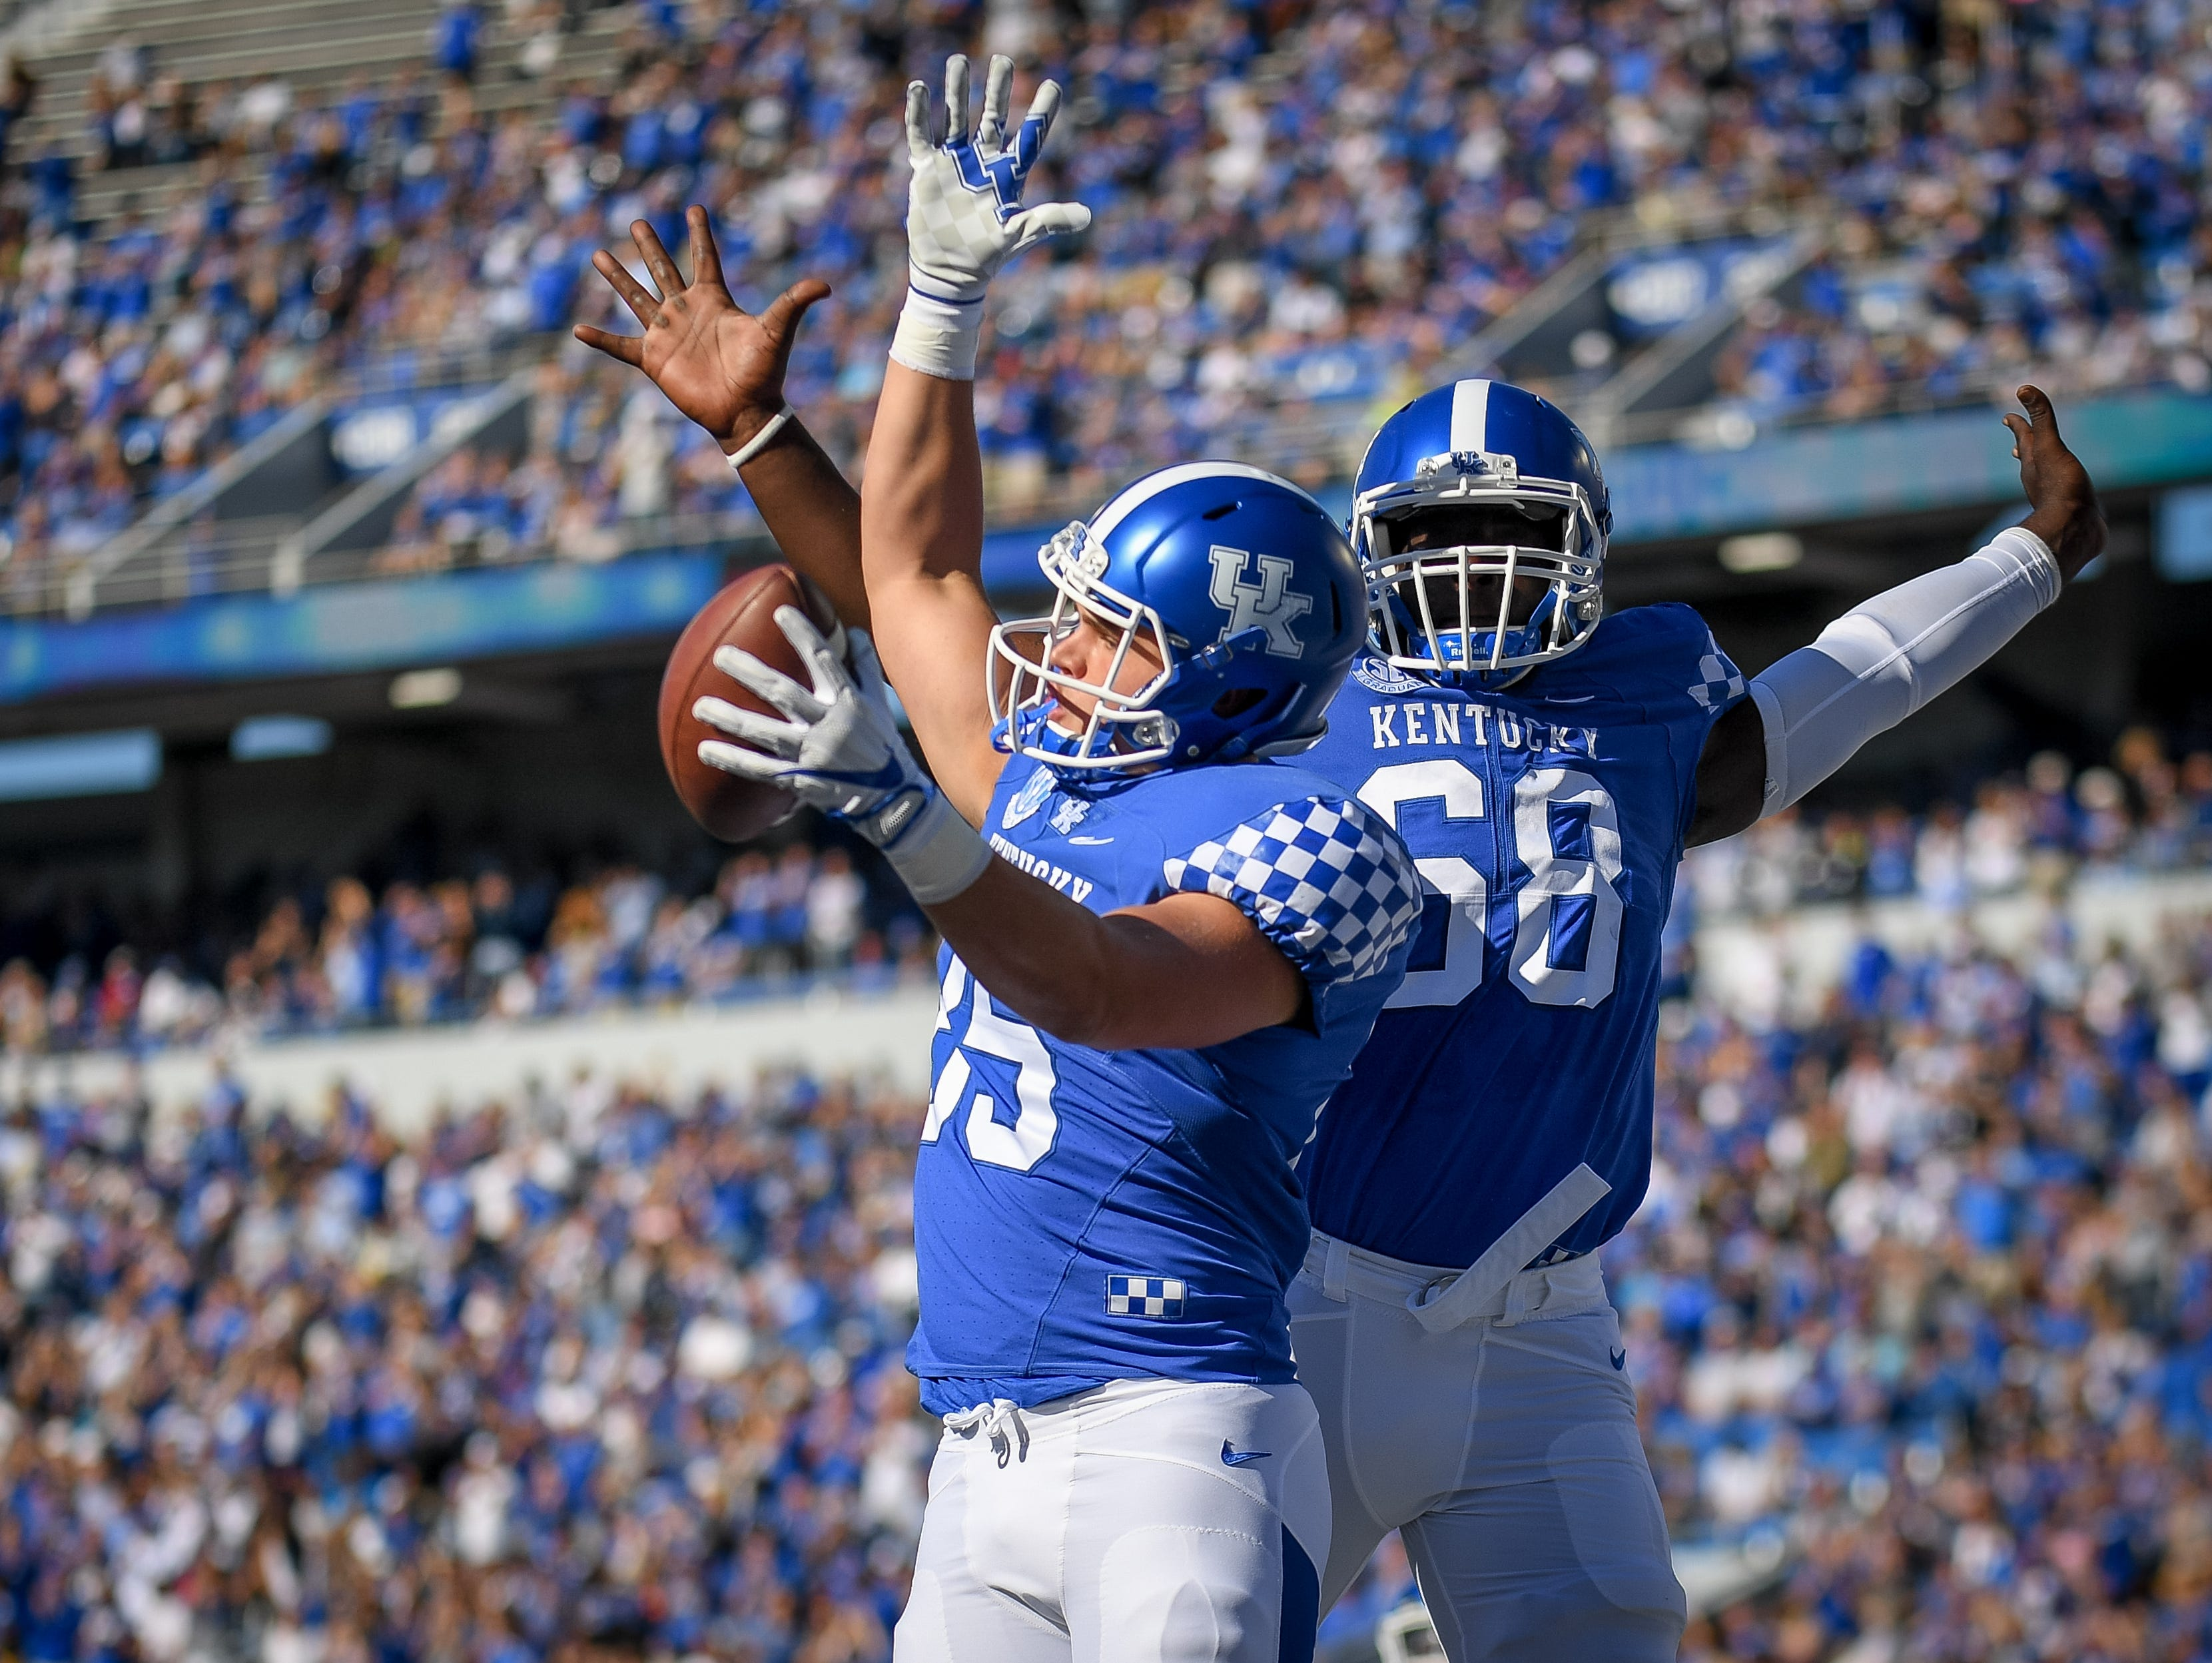 Kentucky Wildcats tight end Greg Hart (85) and Kentucky Wildcats guard Nick Haynes (68) celebrate after a touchdown during the first half of the game against the Eastern Michigan Eagles at Kroger Field on the campus of TheUniversity of Kentucky in Lexington, Ky, Saturday, September 30, 2017.